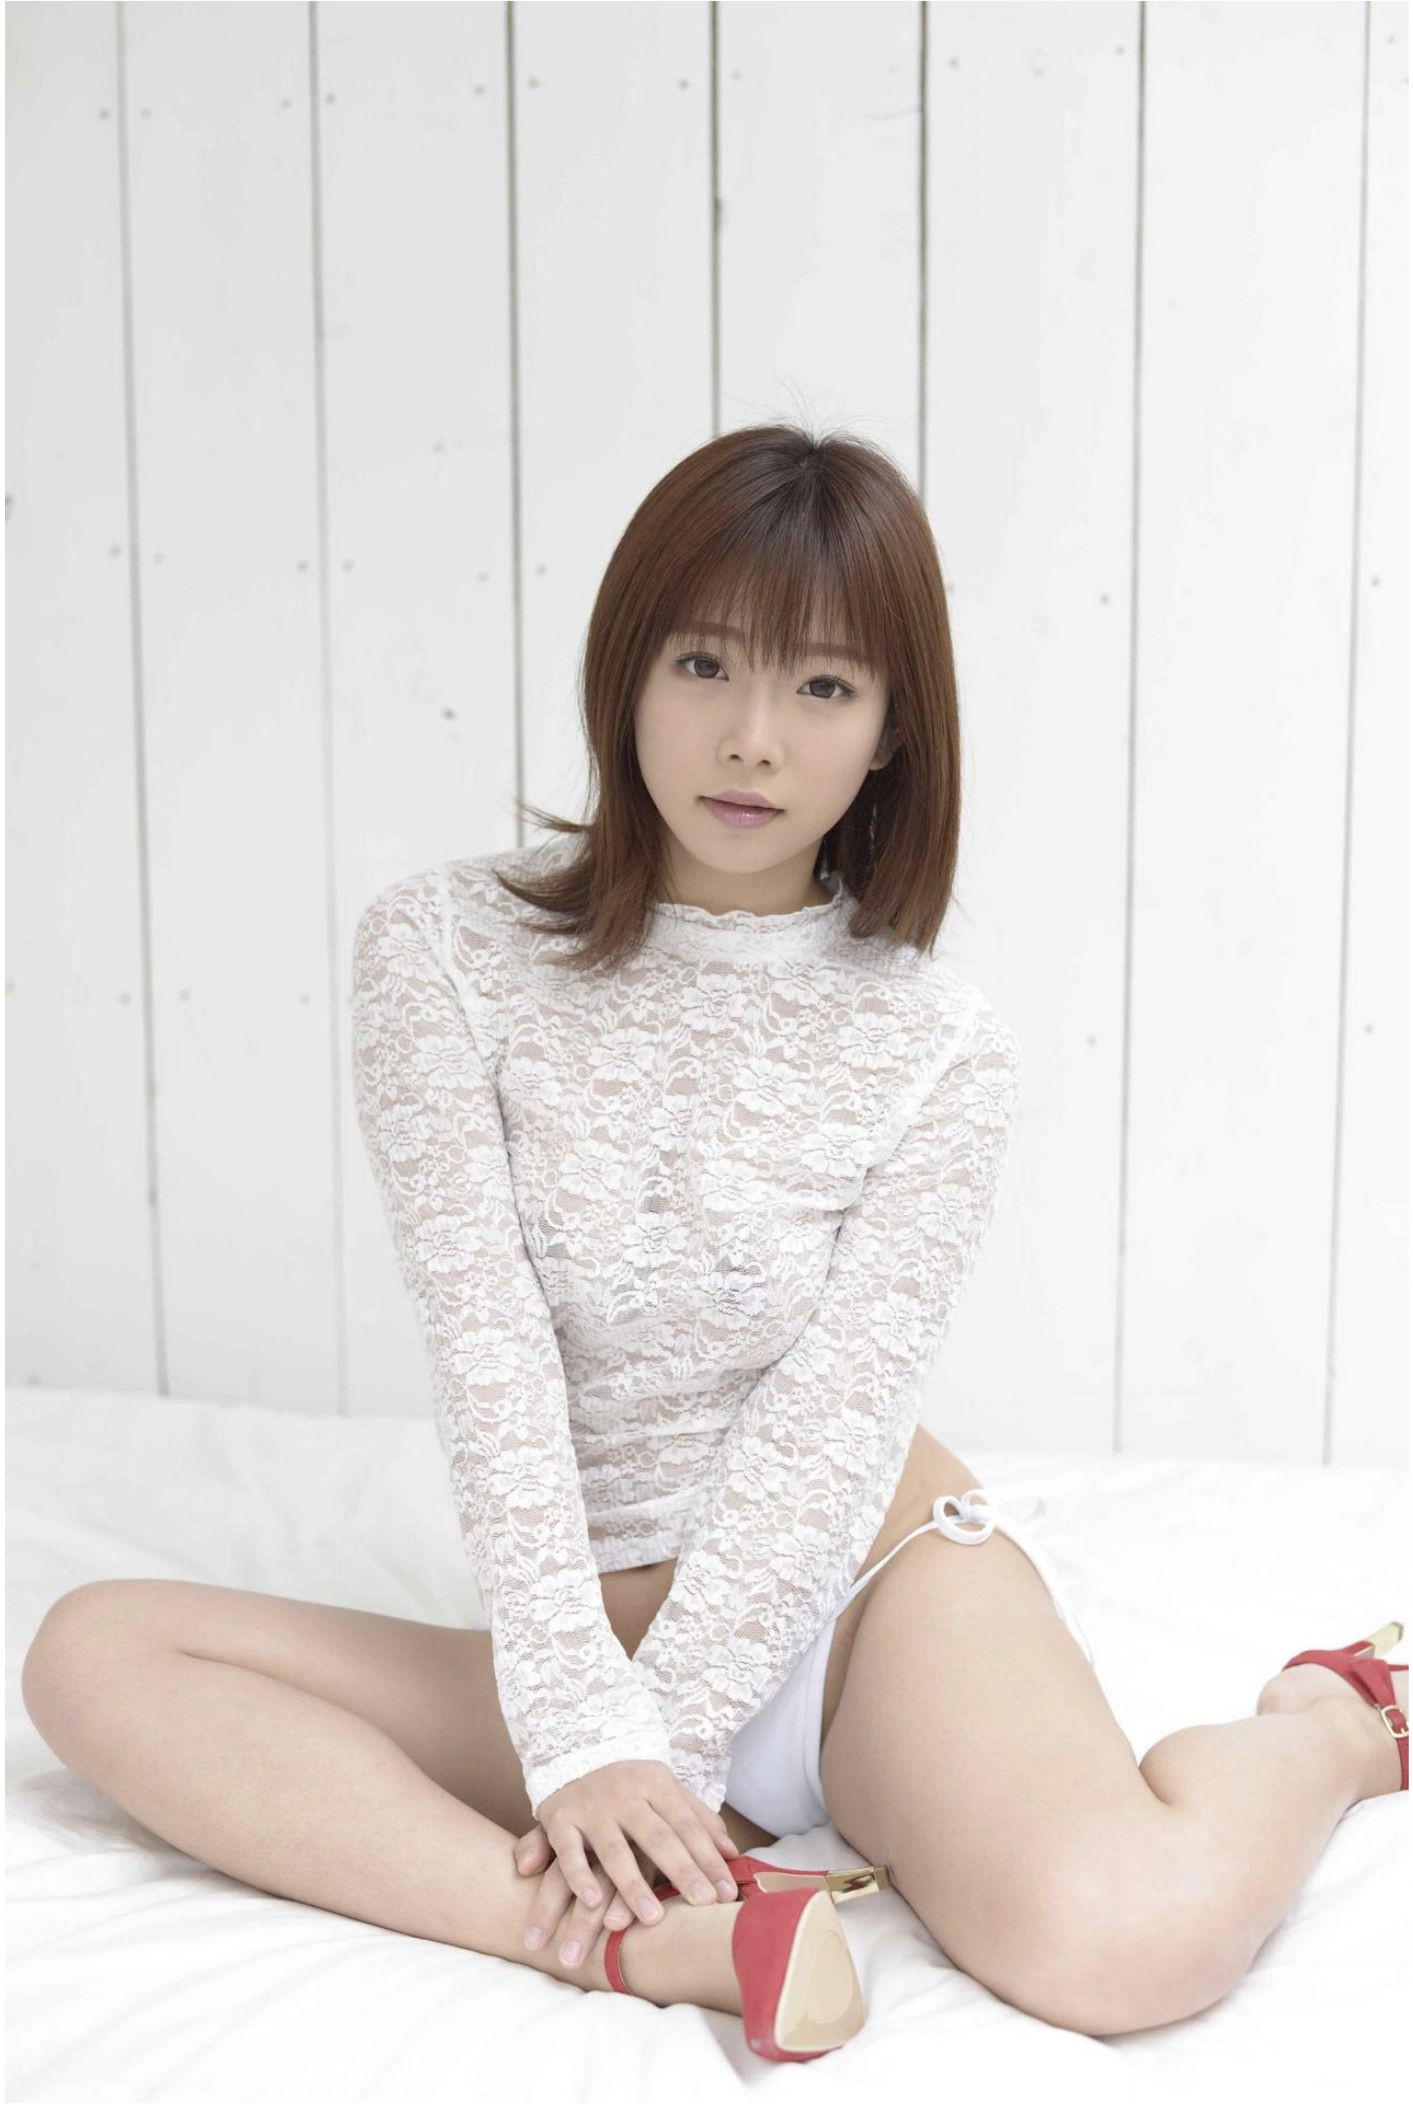 SOFT ON DEMAND GRAVURE COLLECTION 紗倉まな04 photo 052